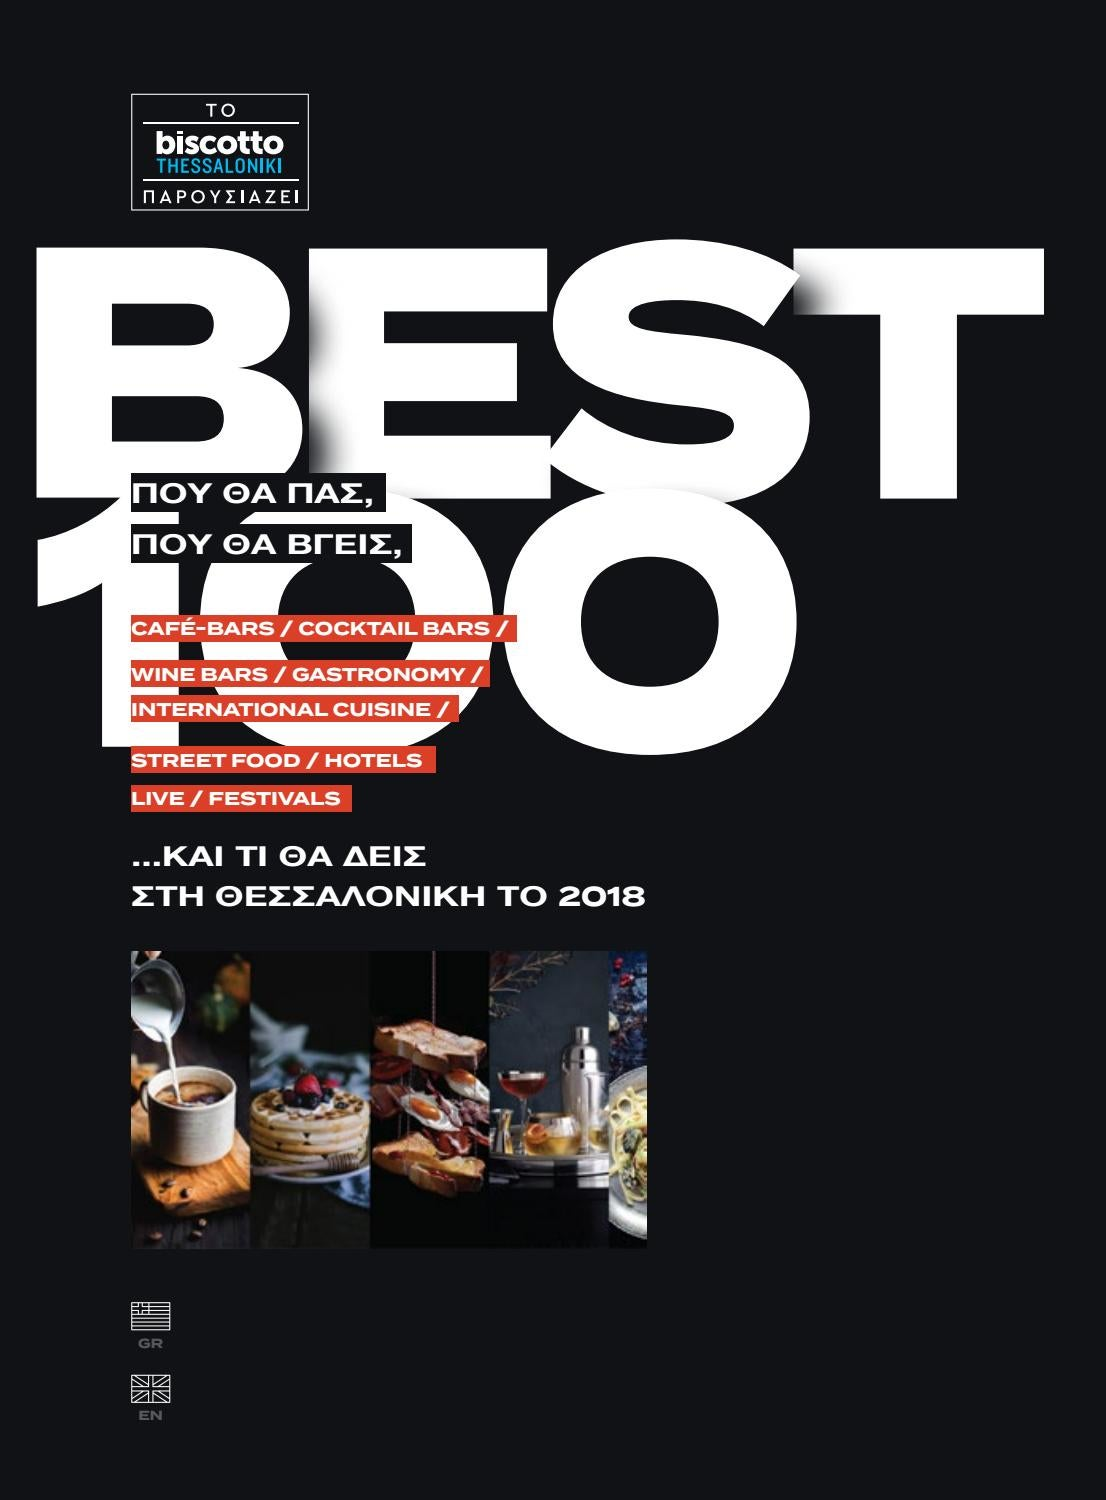 3908b62c1f4 biscotto thessaloniki | Best 100 | 2018 by Media View Publishing - issuu